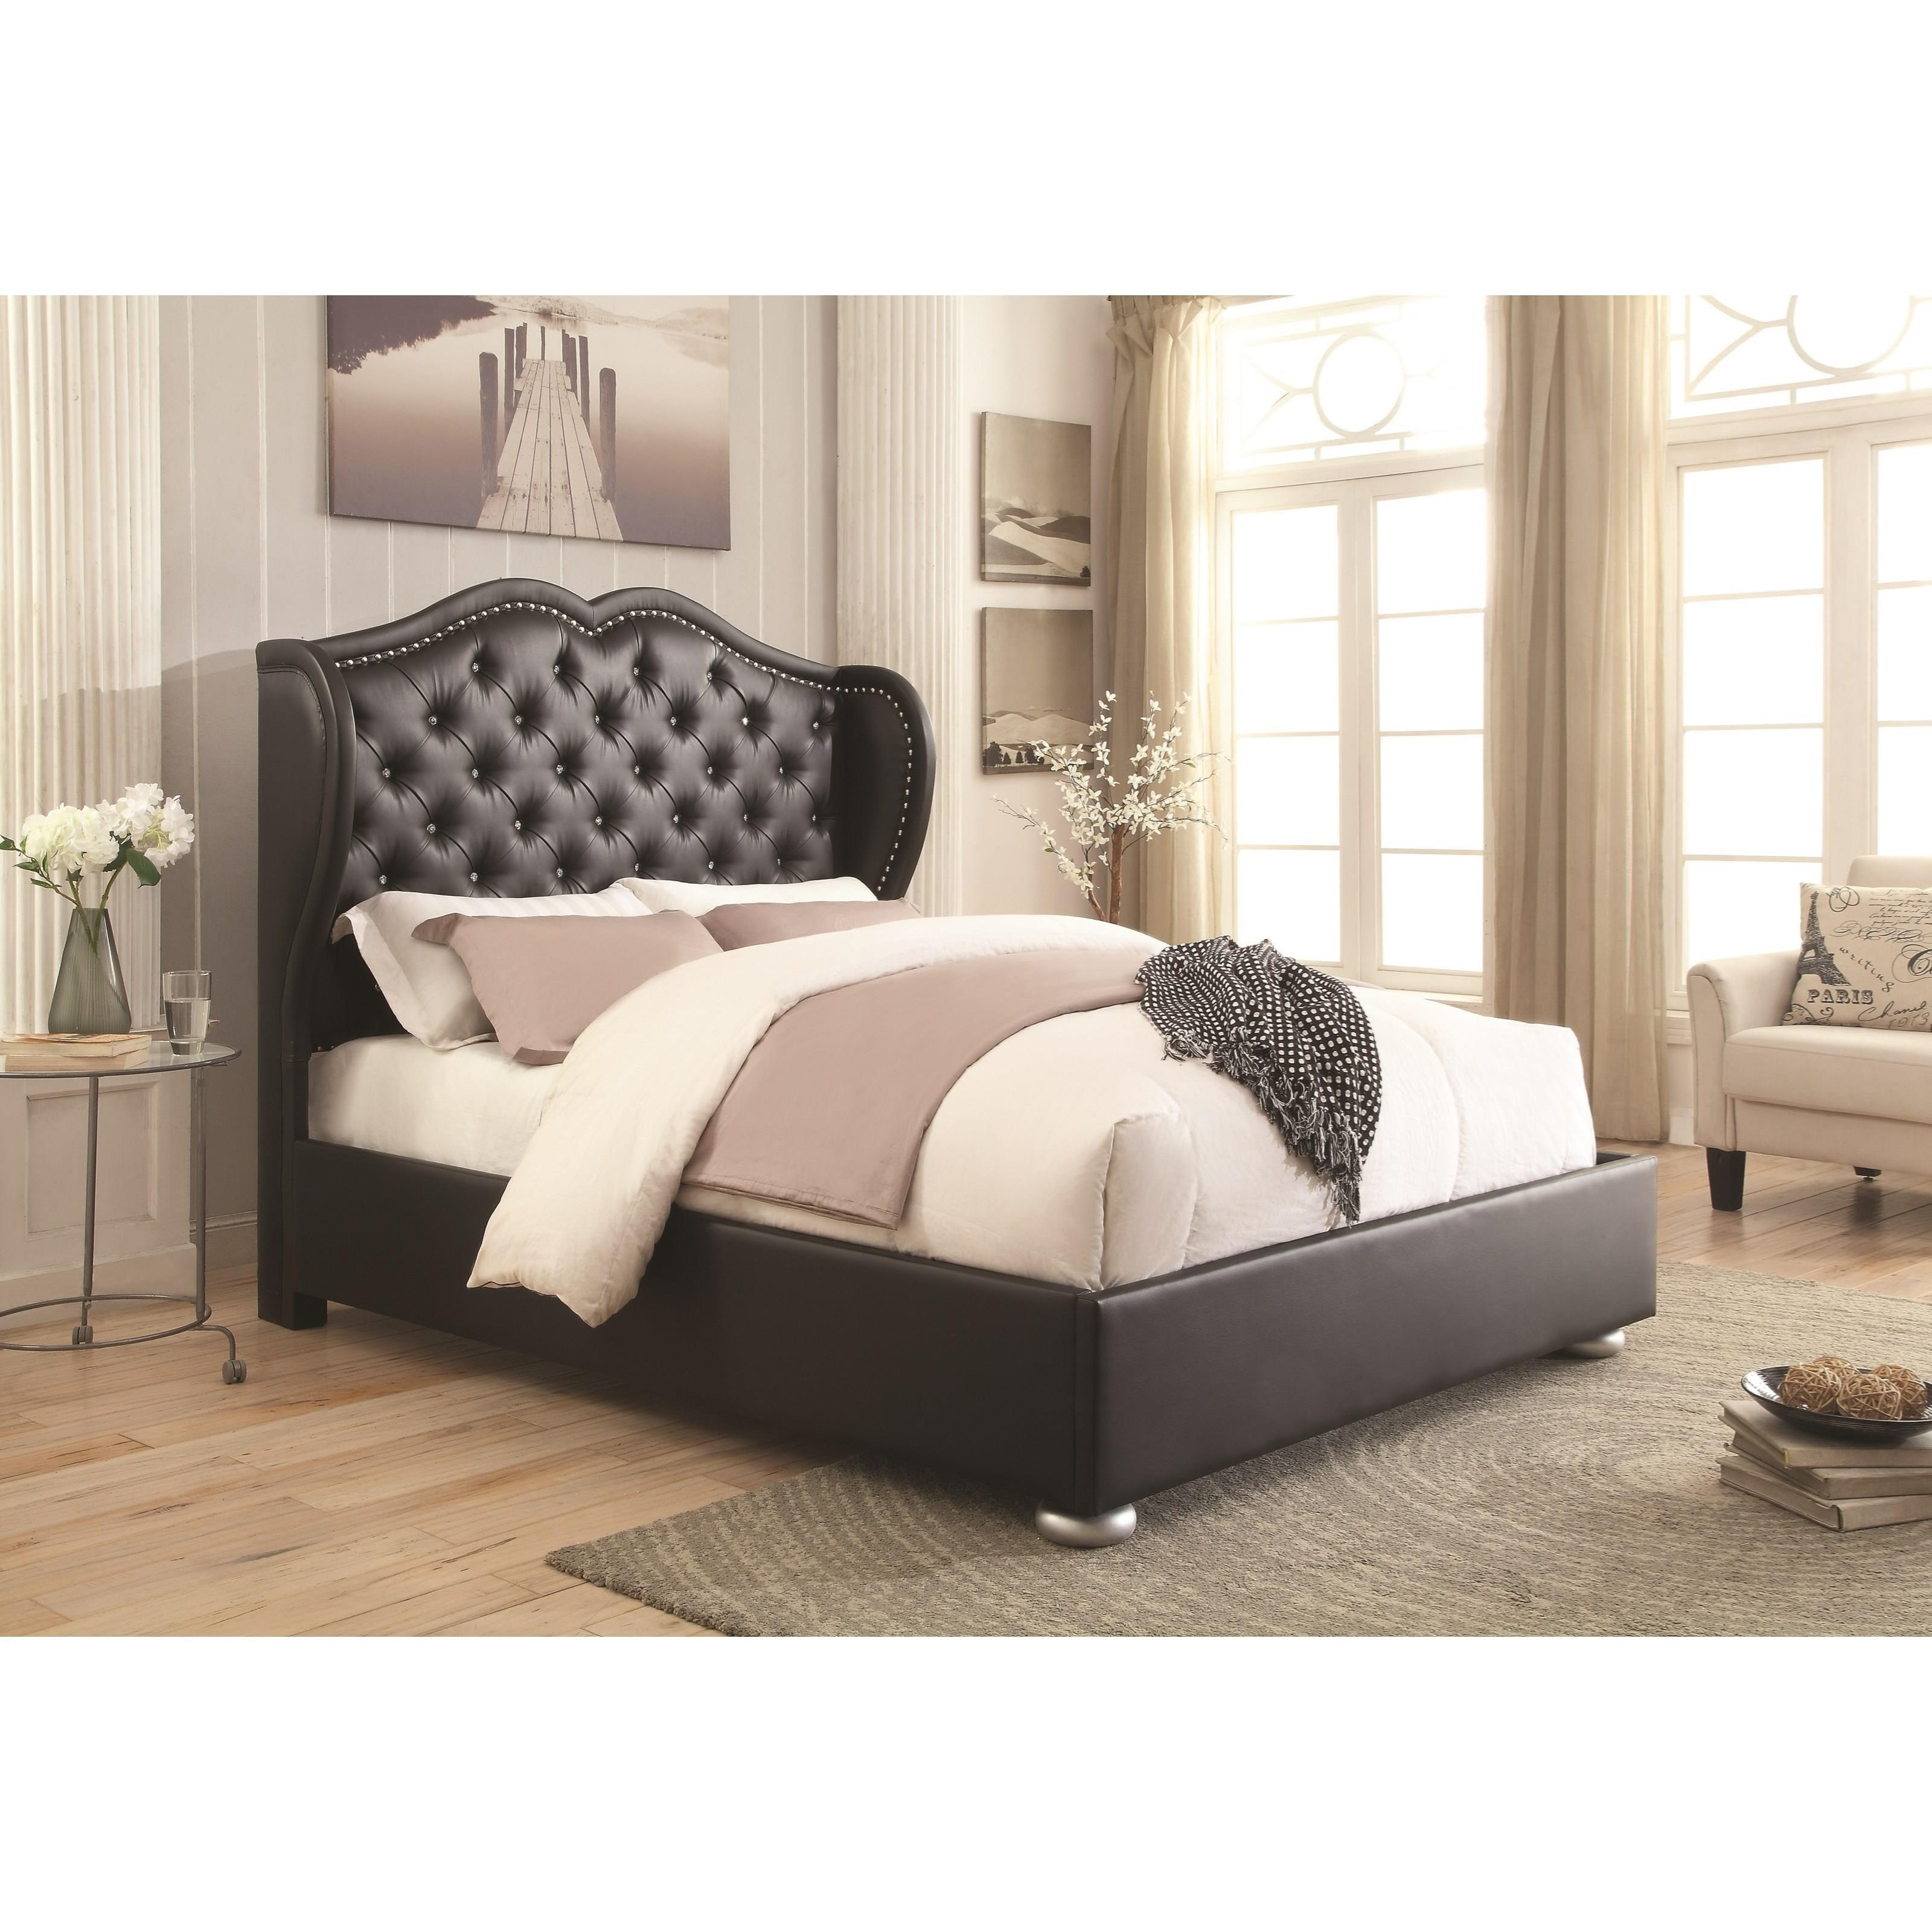 Coaster Upholstered Beds Cal King Bed - Item Number: 302012KW